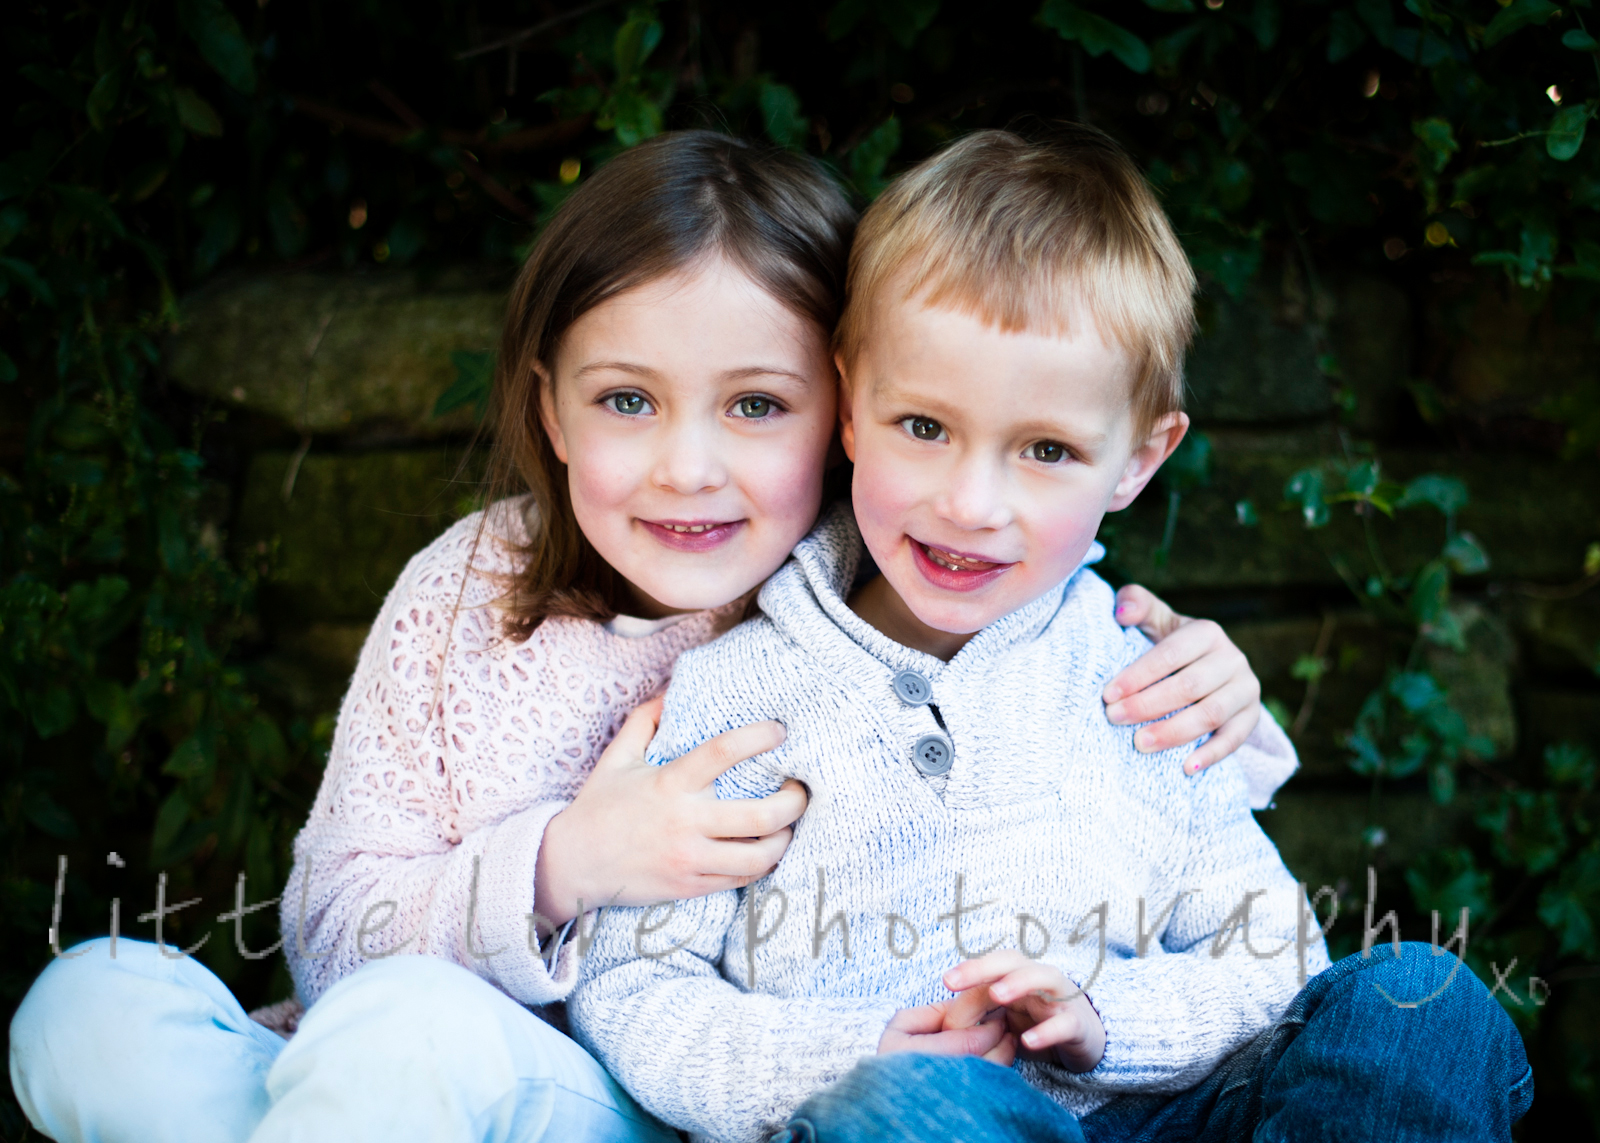 beautiful-photograph-of-brother-and-sister-in-natural-light-candid-and-unposed-by-little-love-photography